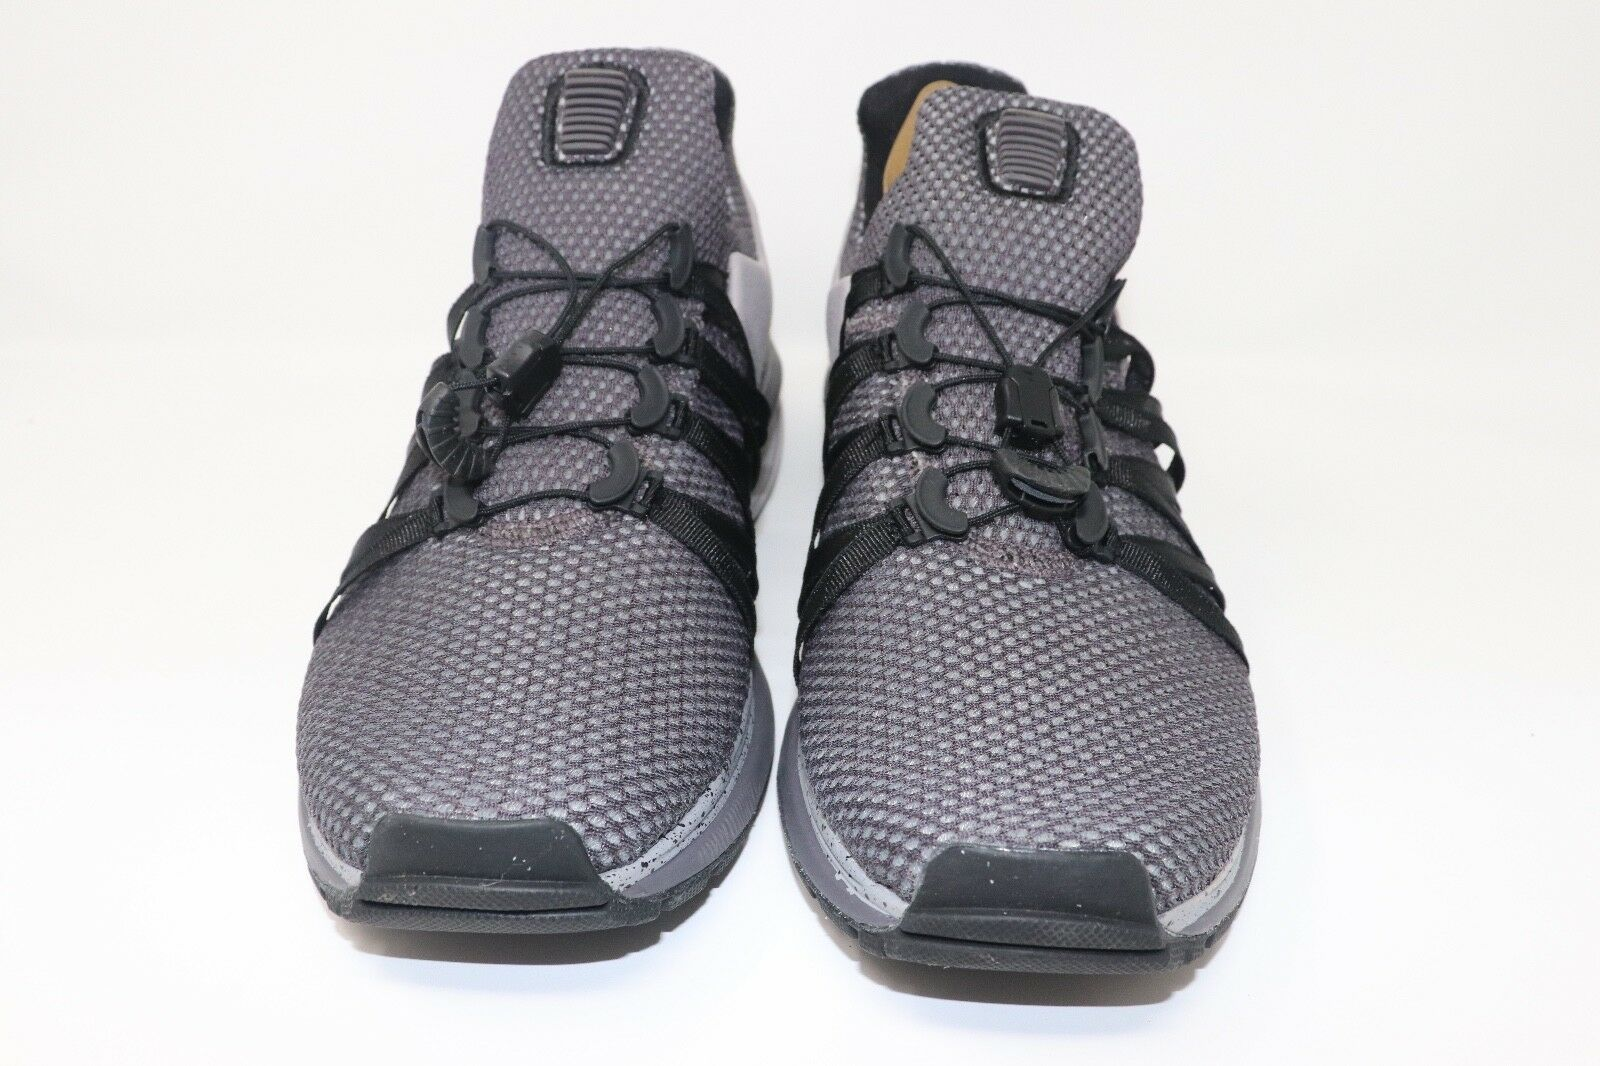 NIKE Shox Gravity Mens Running shoes Multiple colors and Sizes